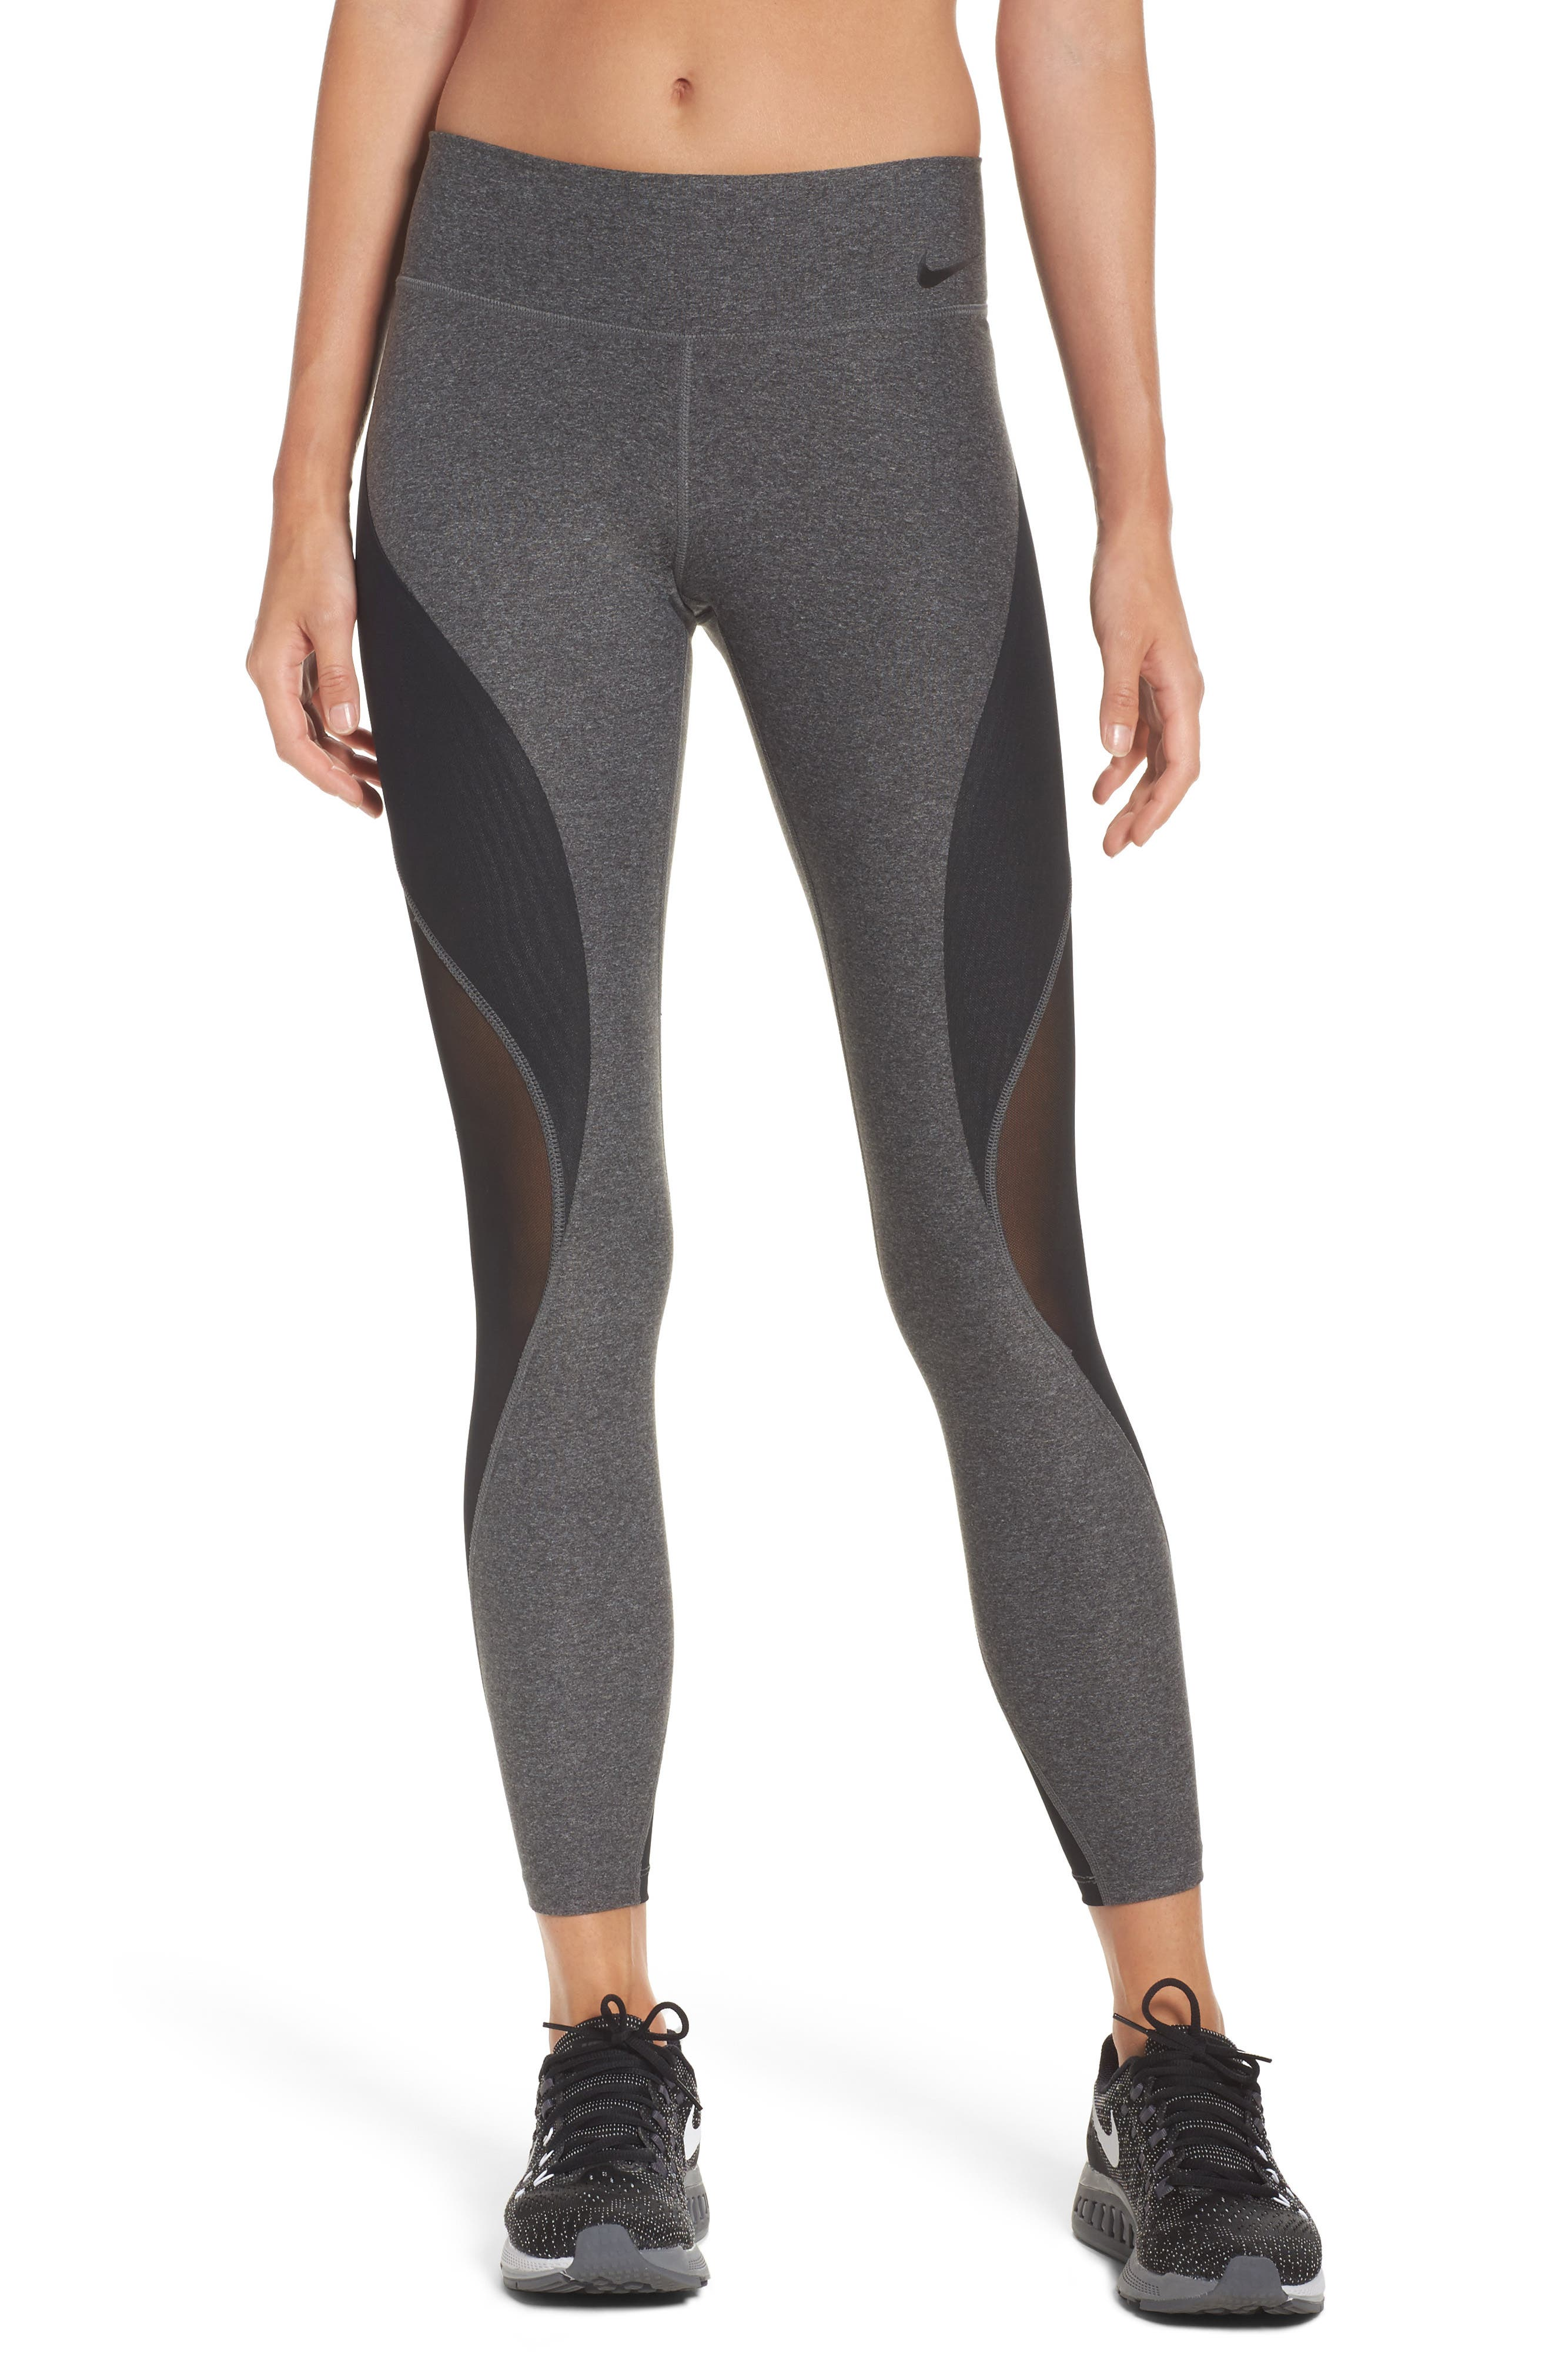 Power Legend Training Tights,                             Main thumbnail 1, color,                             Charcoal Heather/ Black/ White